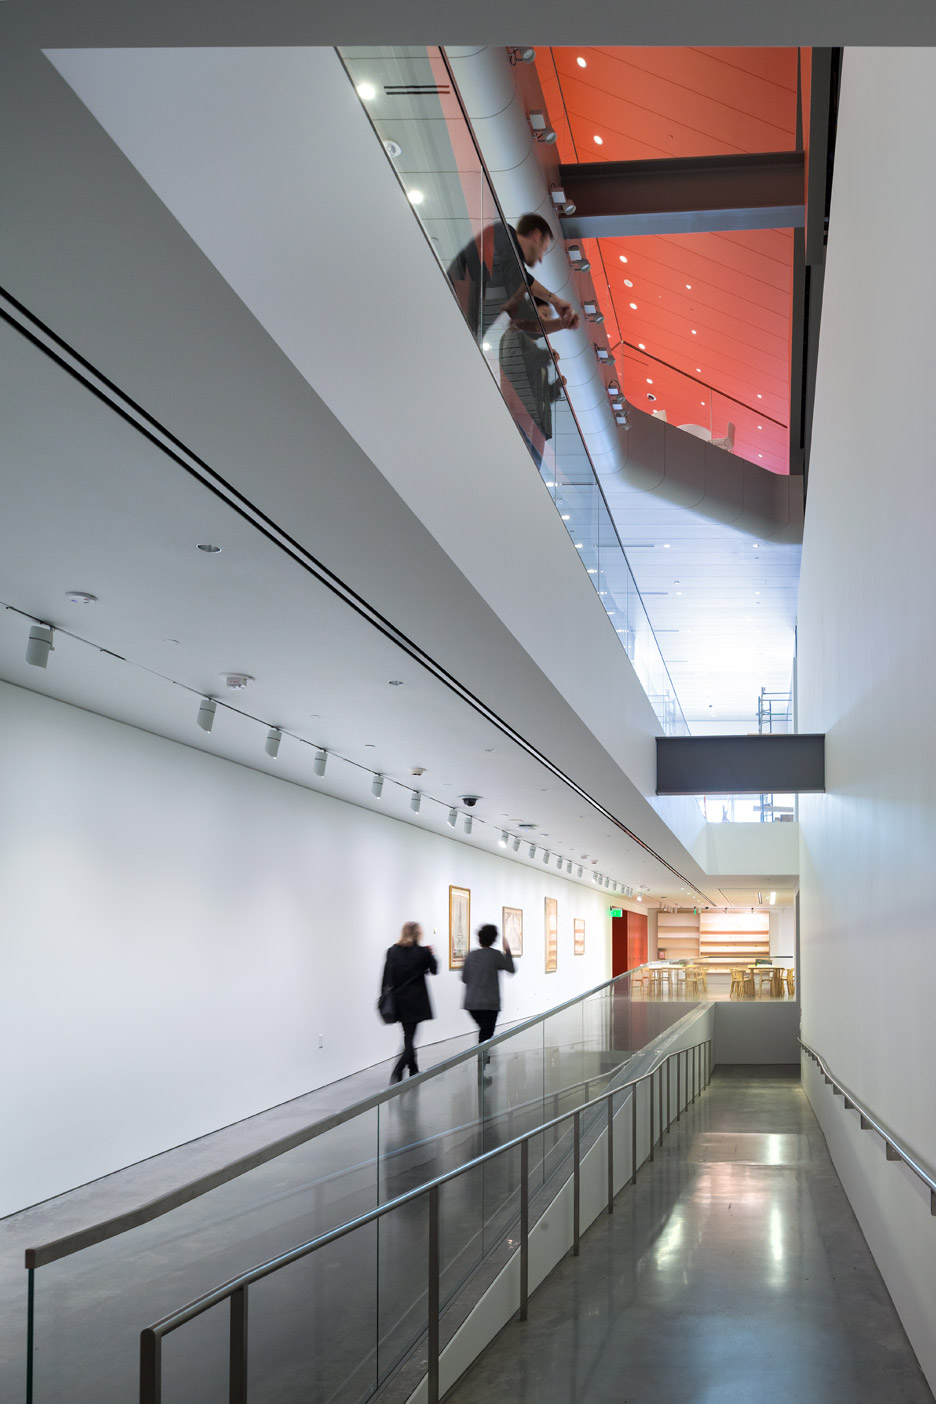 The University of California at Berkeley Art Museum and Pacific Film Archive